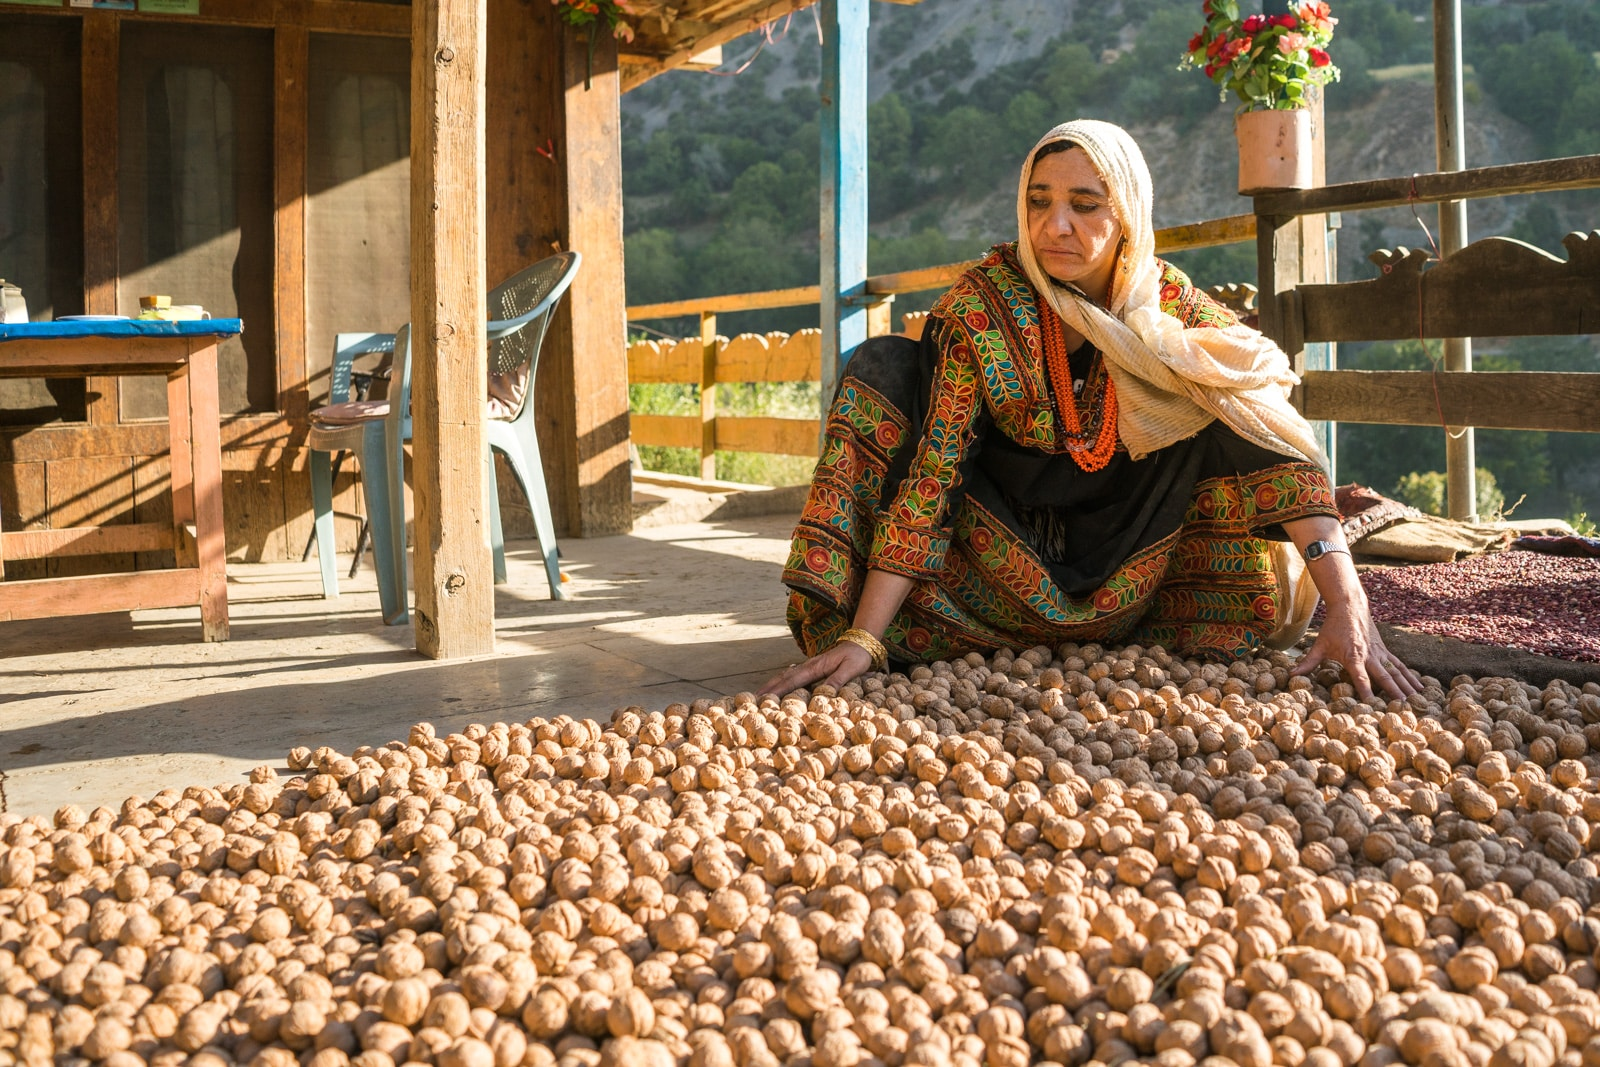 Visiting the Kalash Valleys from Chitral in KPK province, Pakistan - Kalasha woman drying out walnuts to store for winter - Lost With Purpose travel blog